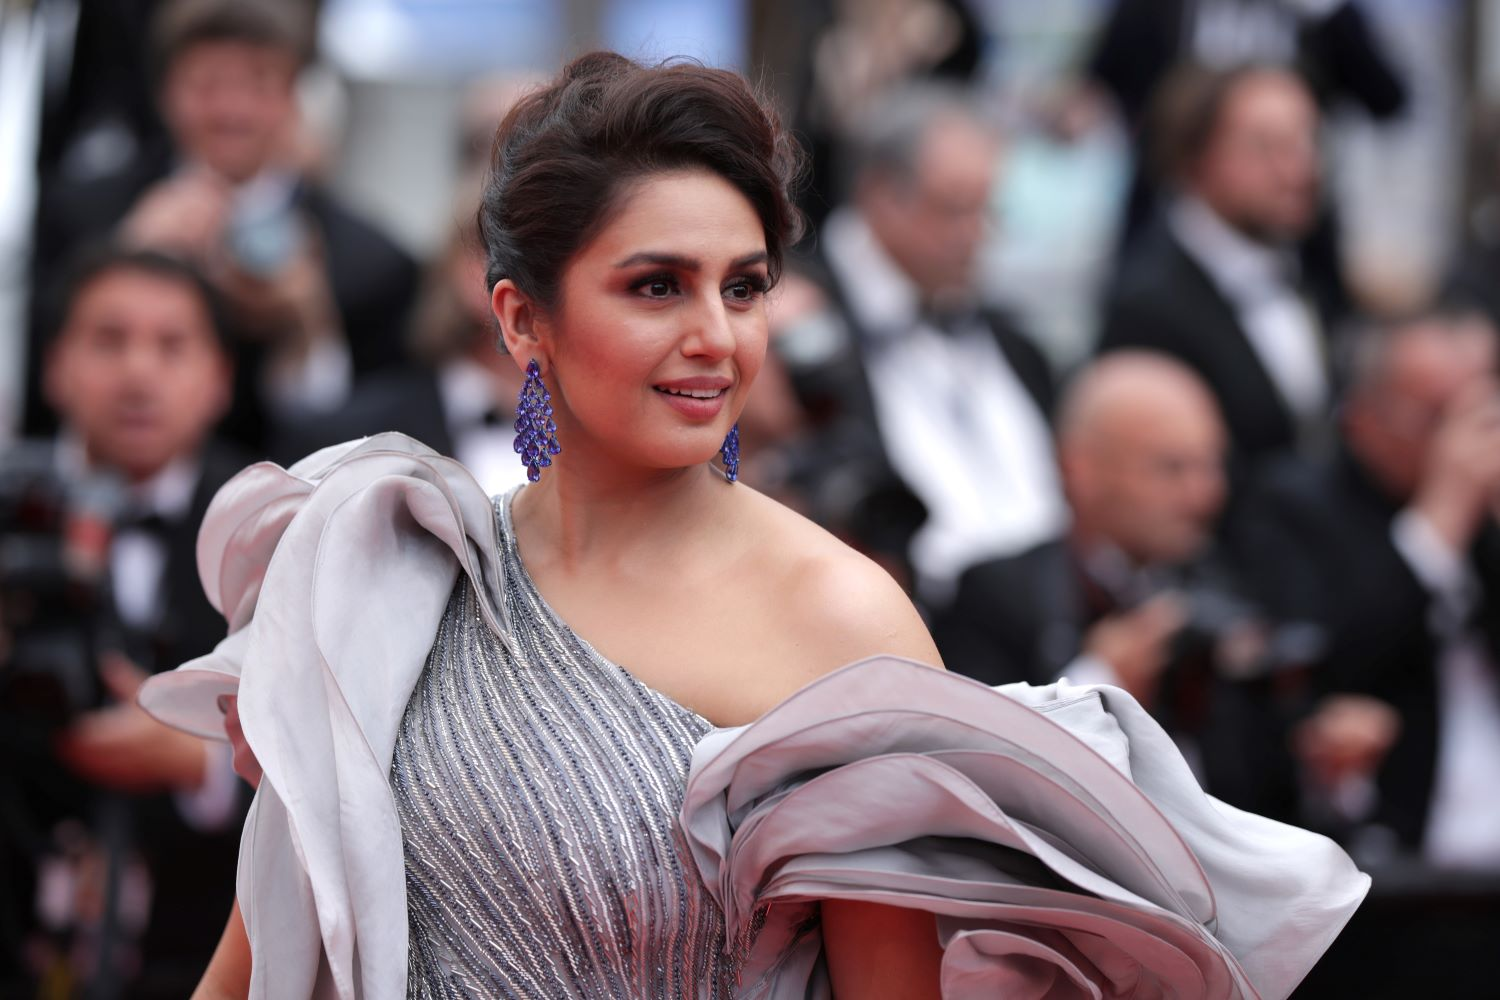 'Army of the Dead' star Huma Qureshi at the 72nd Annual Cannes Film Festival in 2019